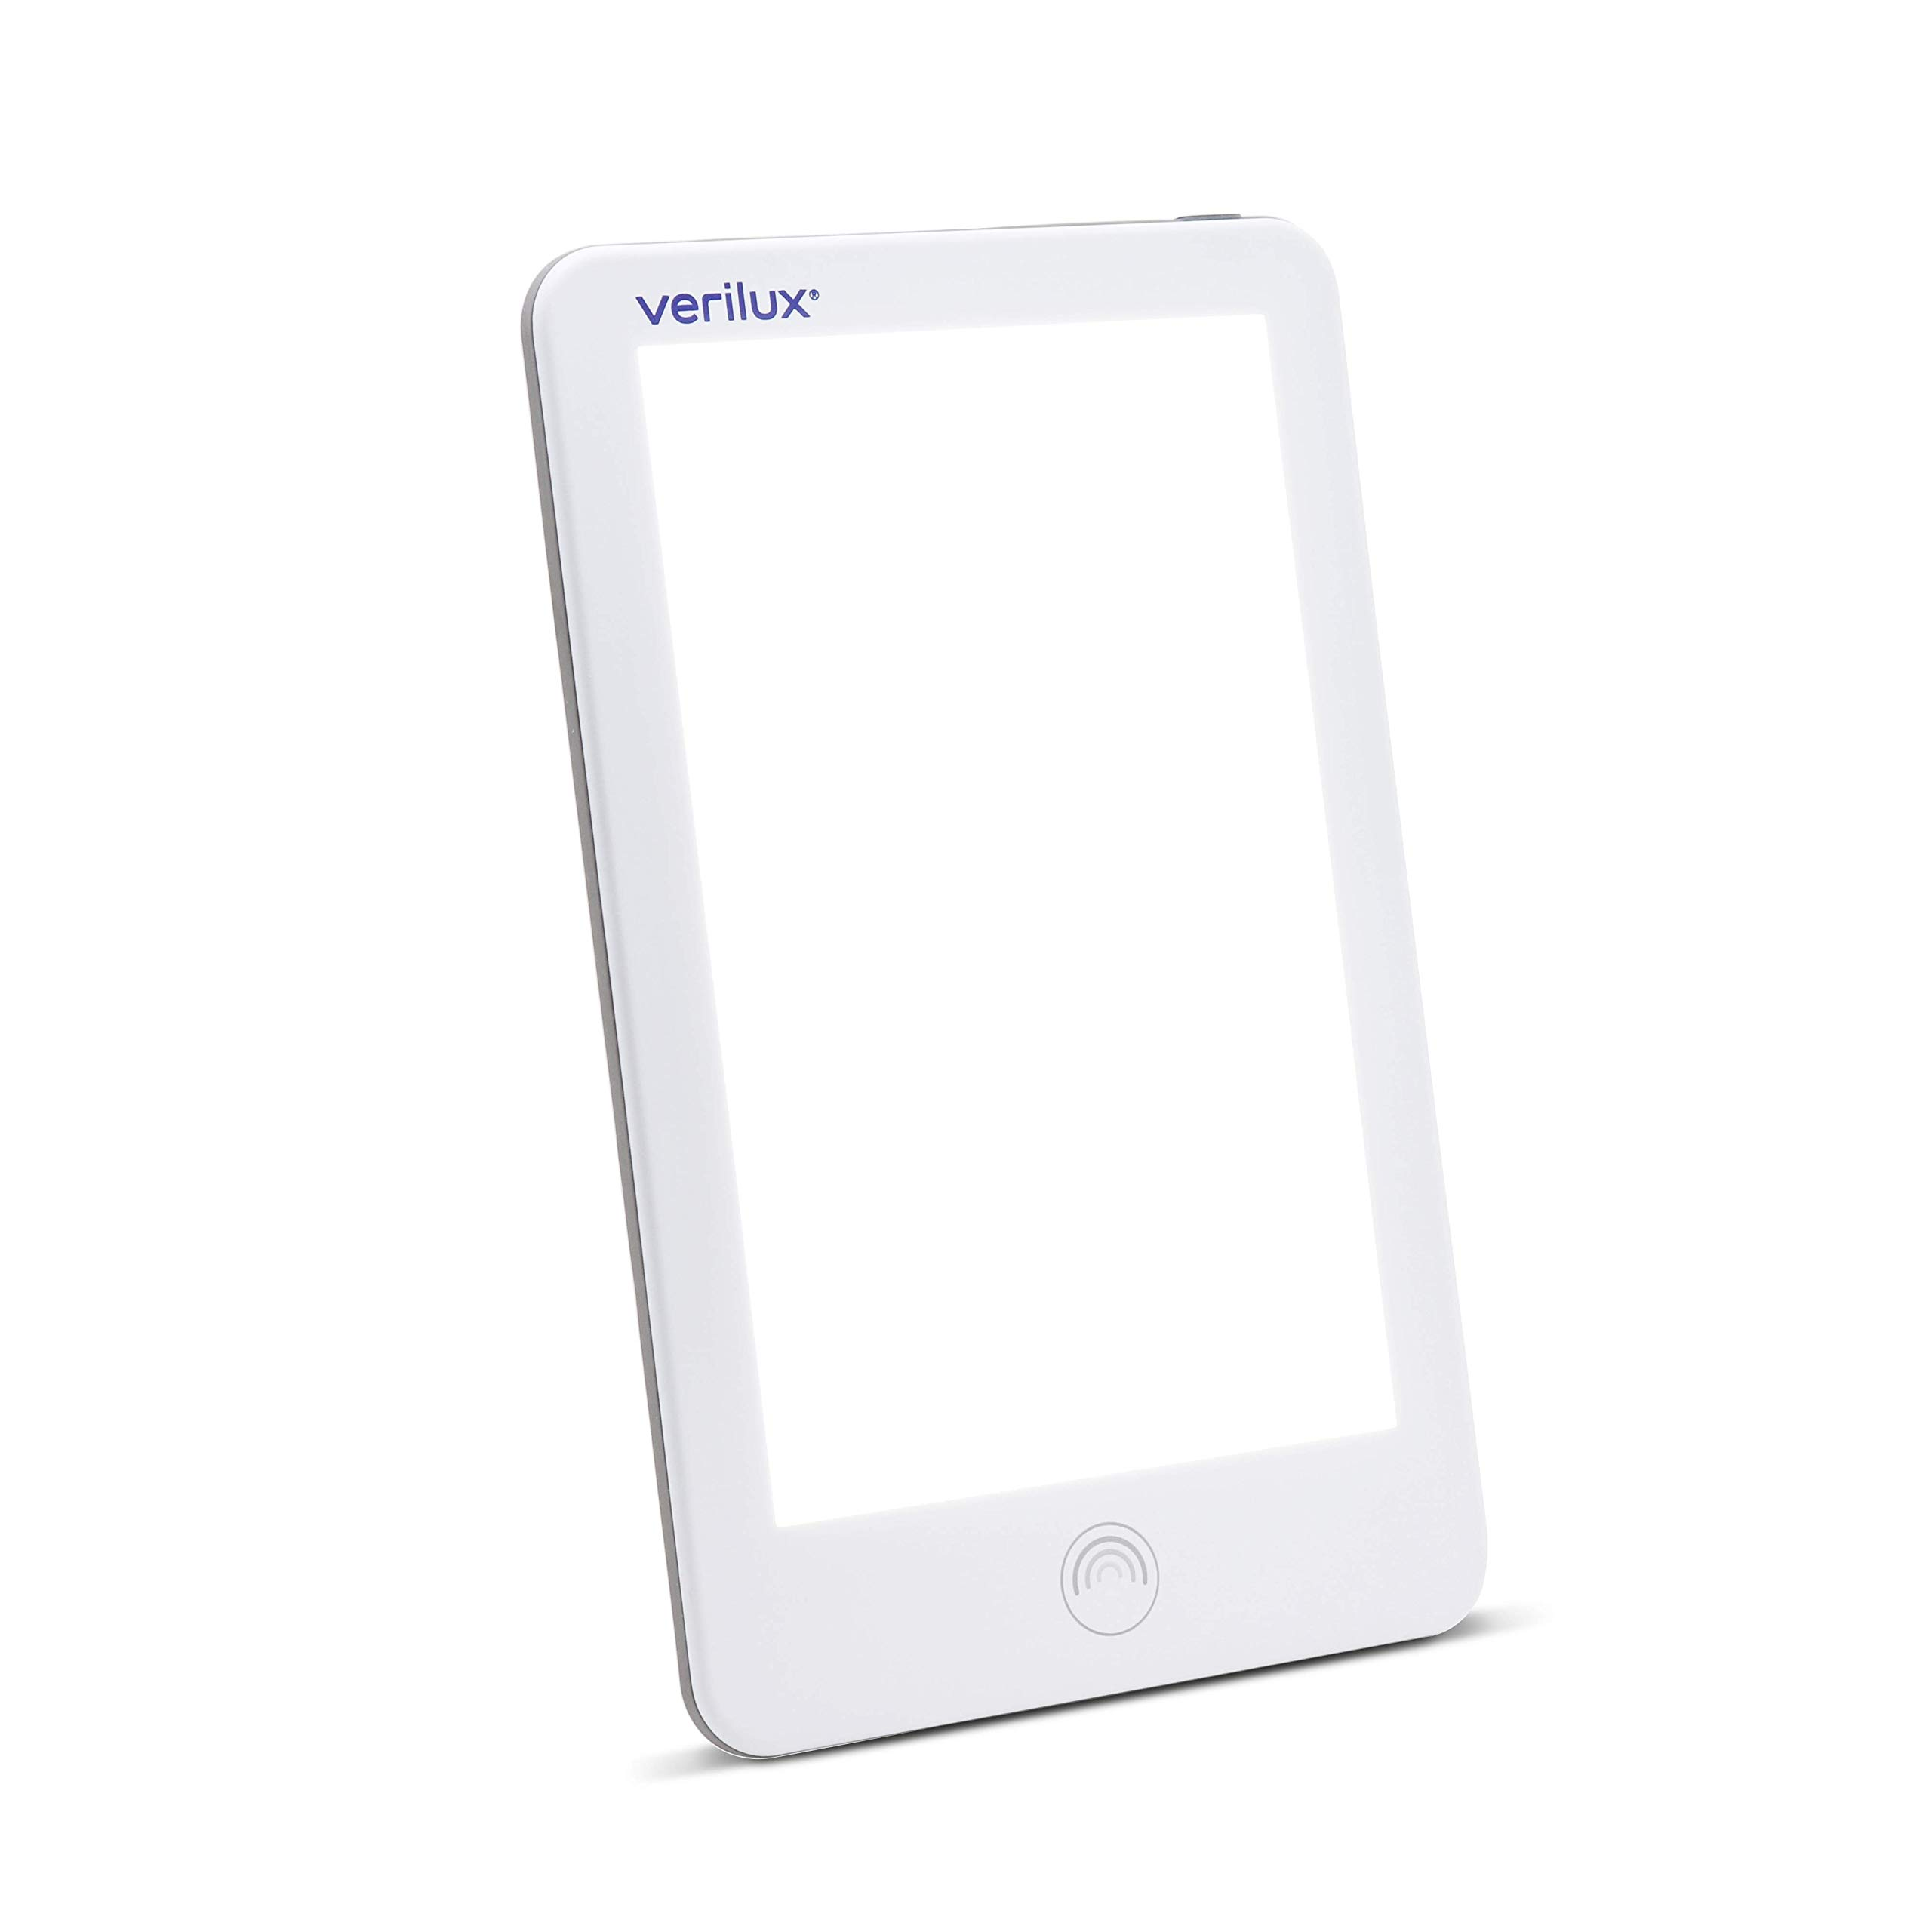 (New) Verilux HappyLight VT31 Lumi 10,000 Lux LED Bright White Light Therapy Lamp with Adjustable Brightness by Verilux